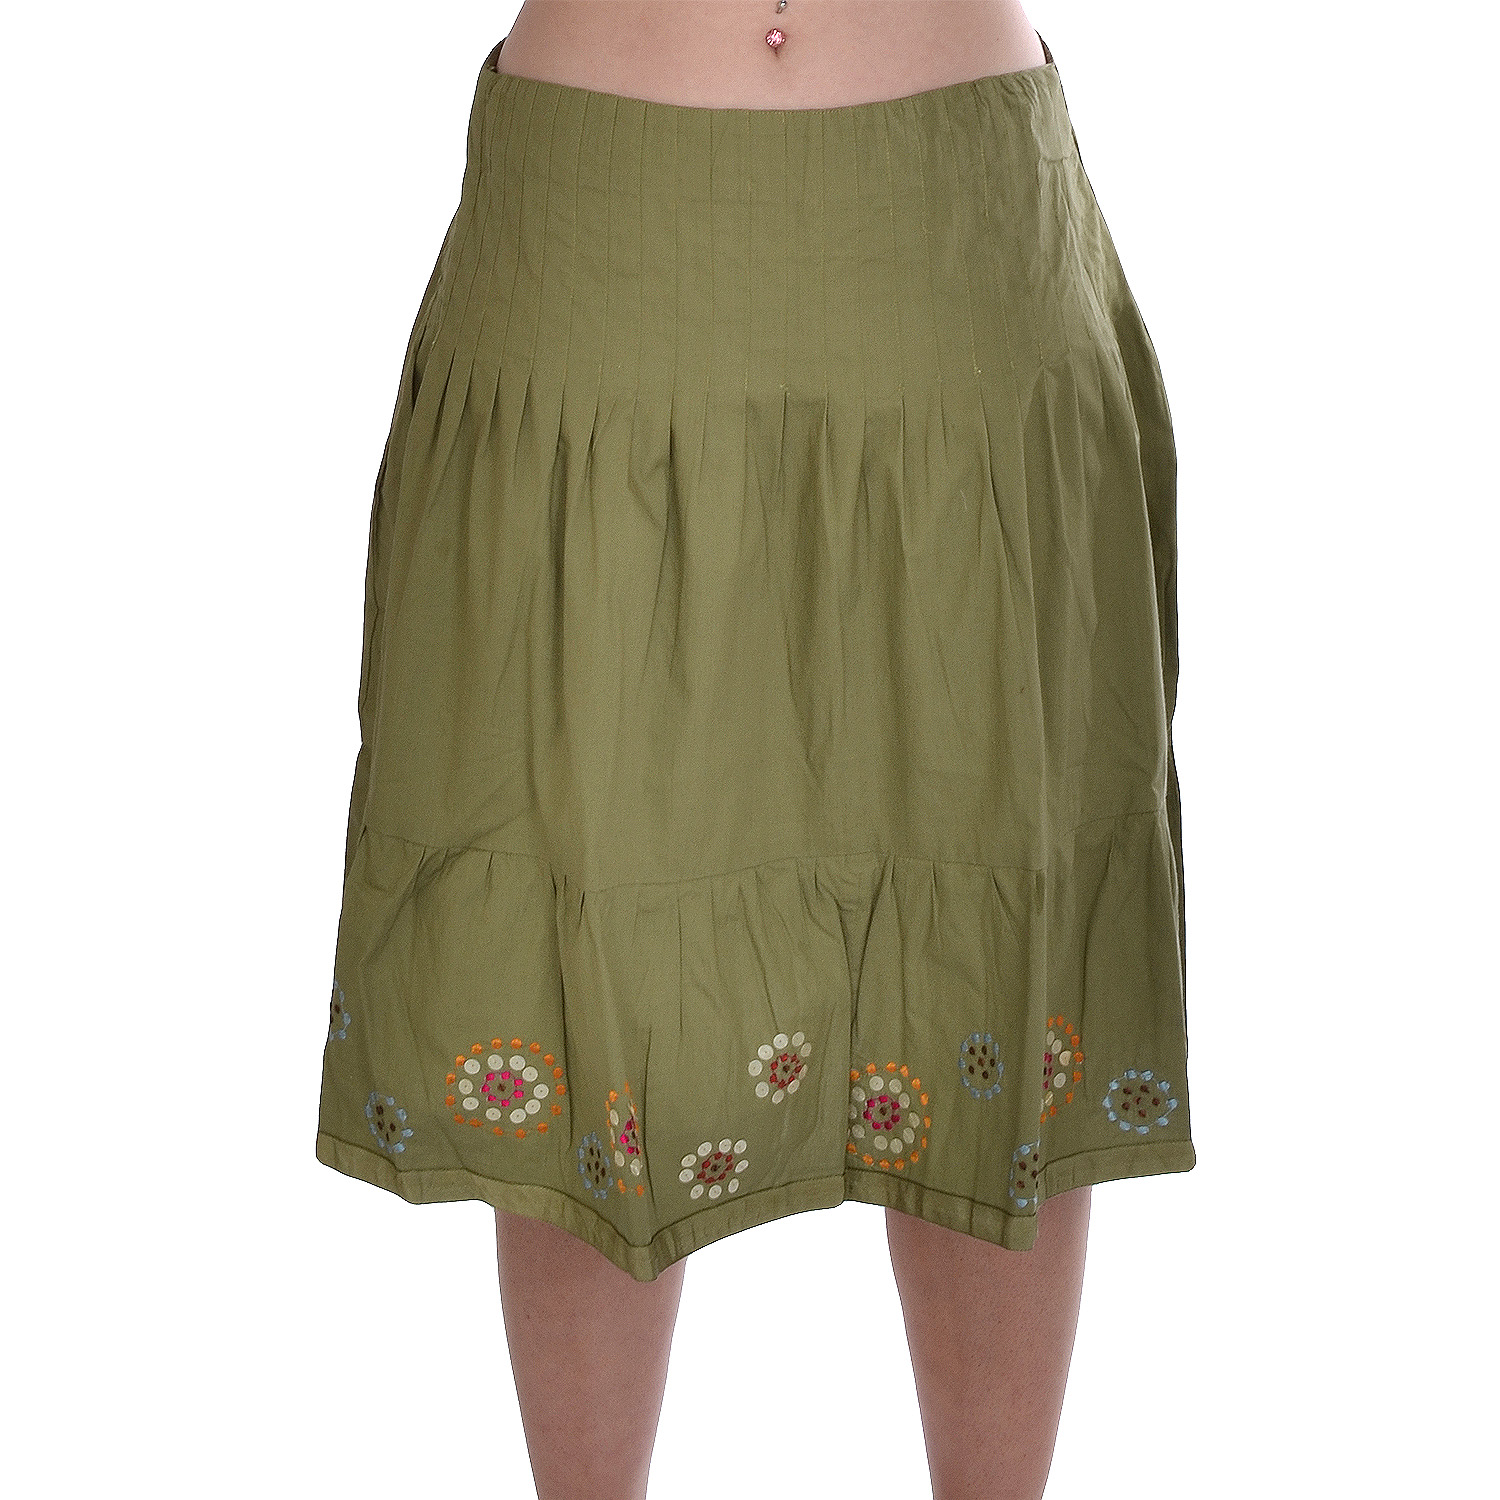 Women's Skorts. Find all your women's needs at Kohl's. We have you covered from head to toe, including women's skirts & skorts. At Kohl's, you can find your wardrobe essentials in a variety of sizes and styles, including plus size maxi skirts and women's petite avupude.ml your office ensemble, be sure to shop our selection of versatile black pencil skirts.